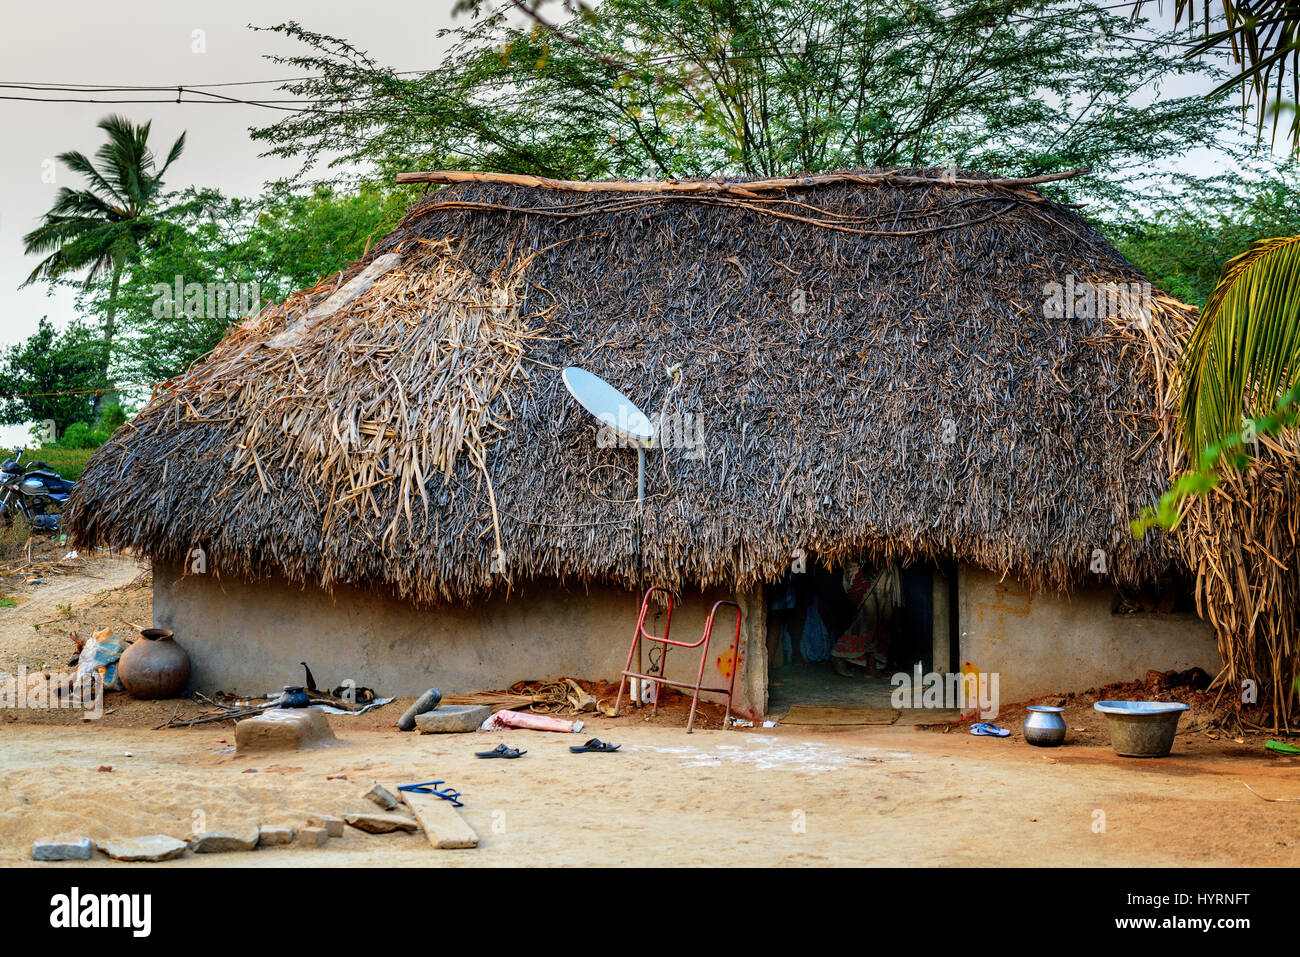 Traditional thatch hut with satellite TV dish - Stock Image